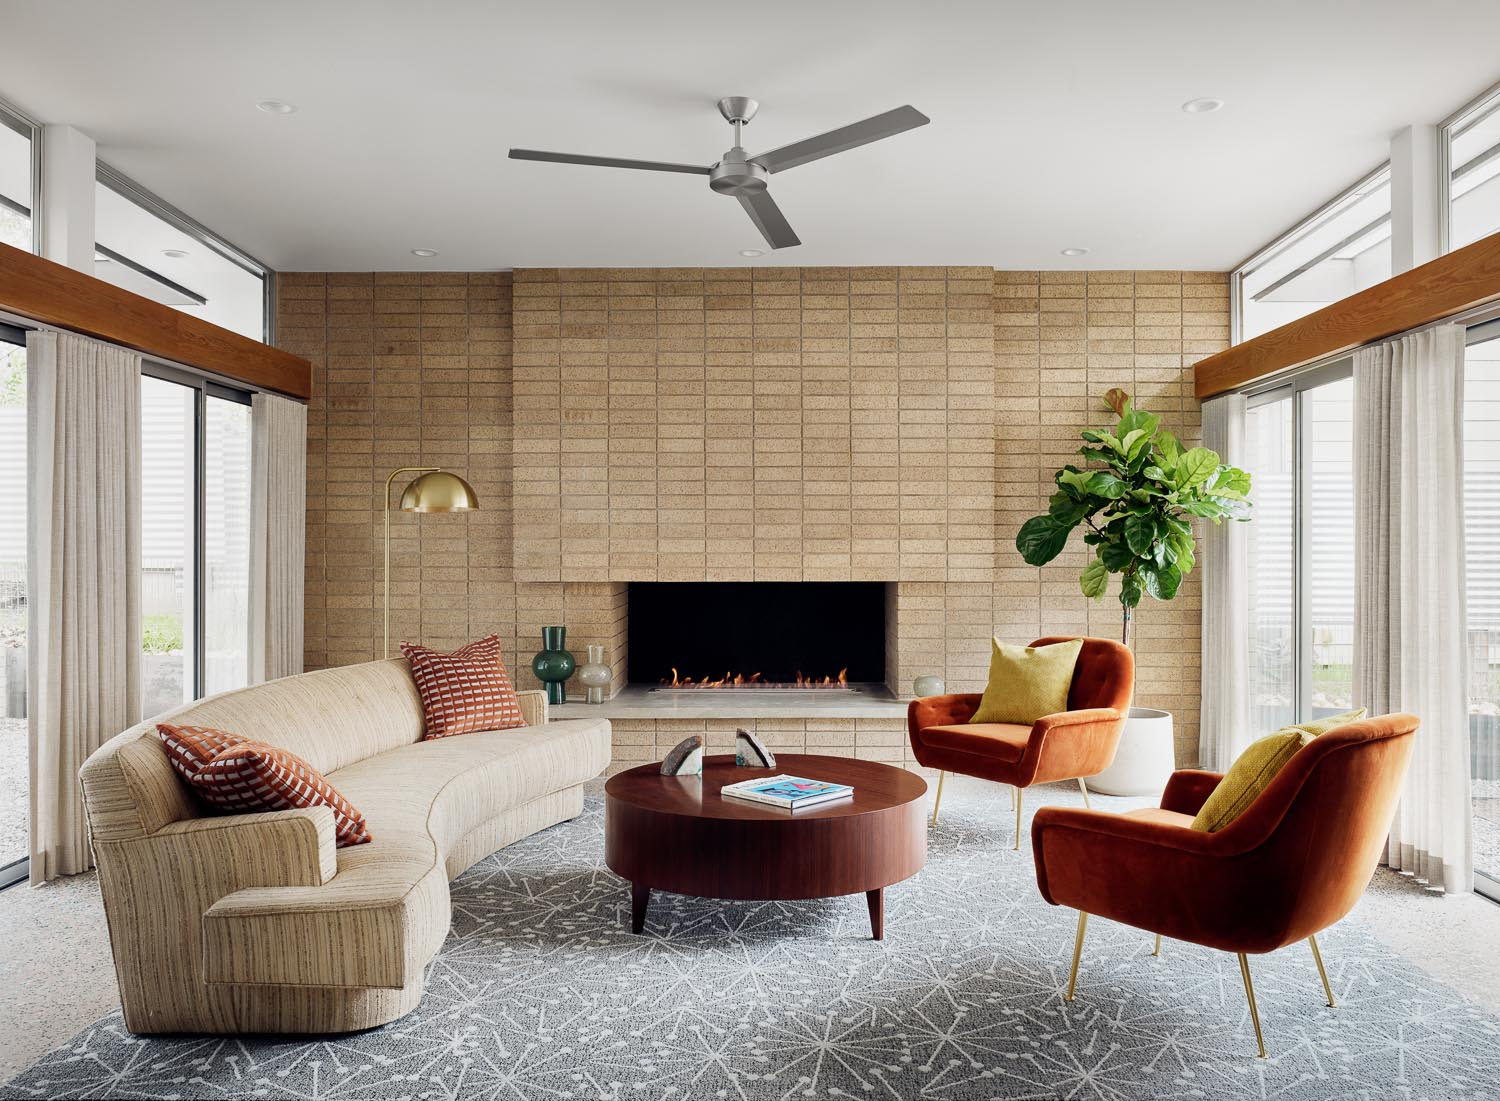 In this mid-century modern inspired living room, there's high ceilings and floor-to-ceiling windows that line the walls, while a brown brick fireplace is the focal point.